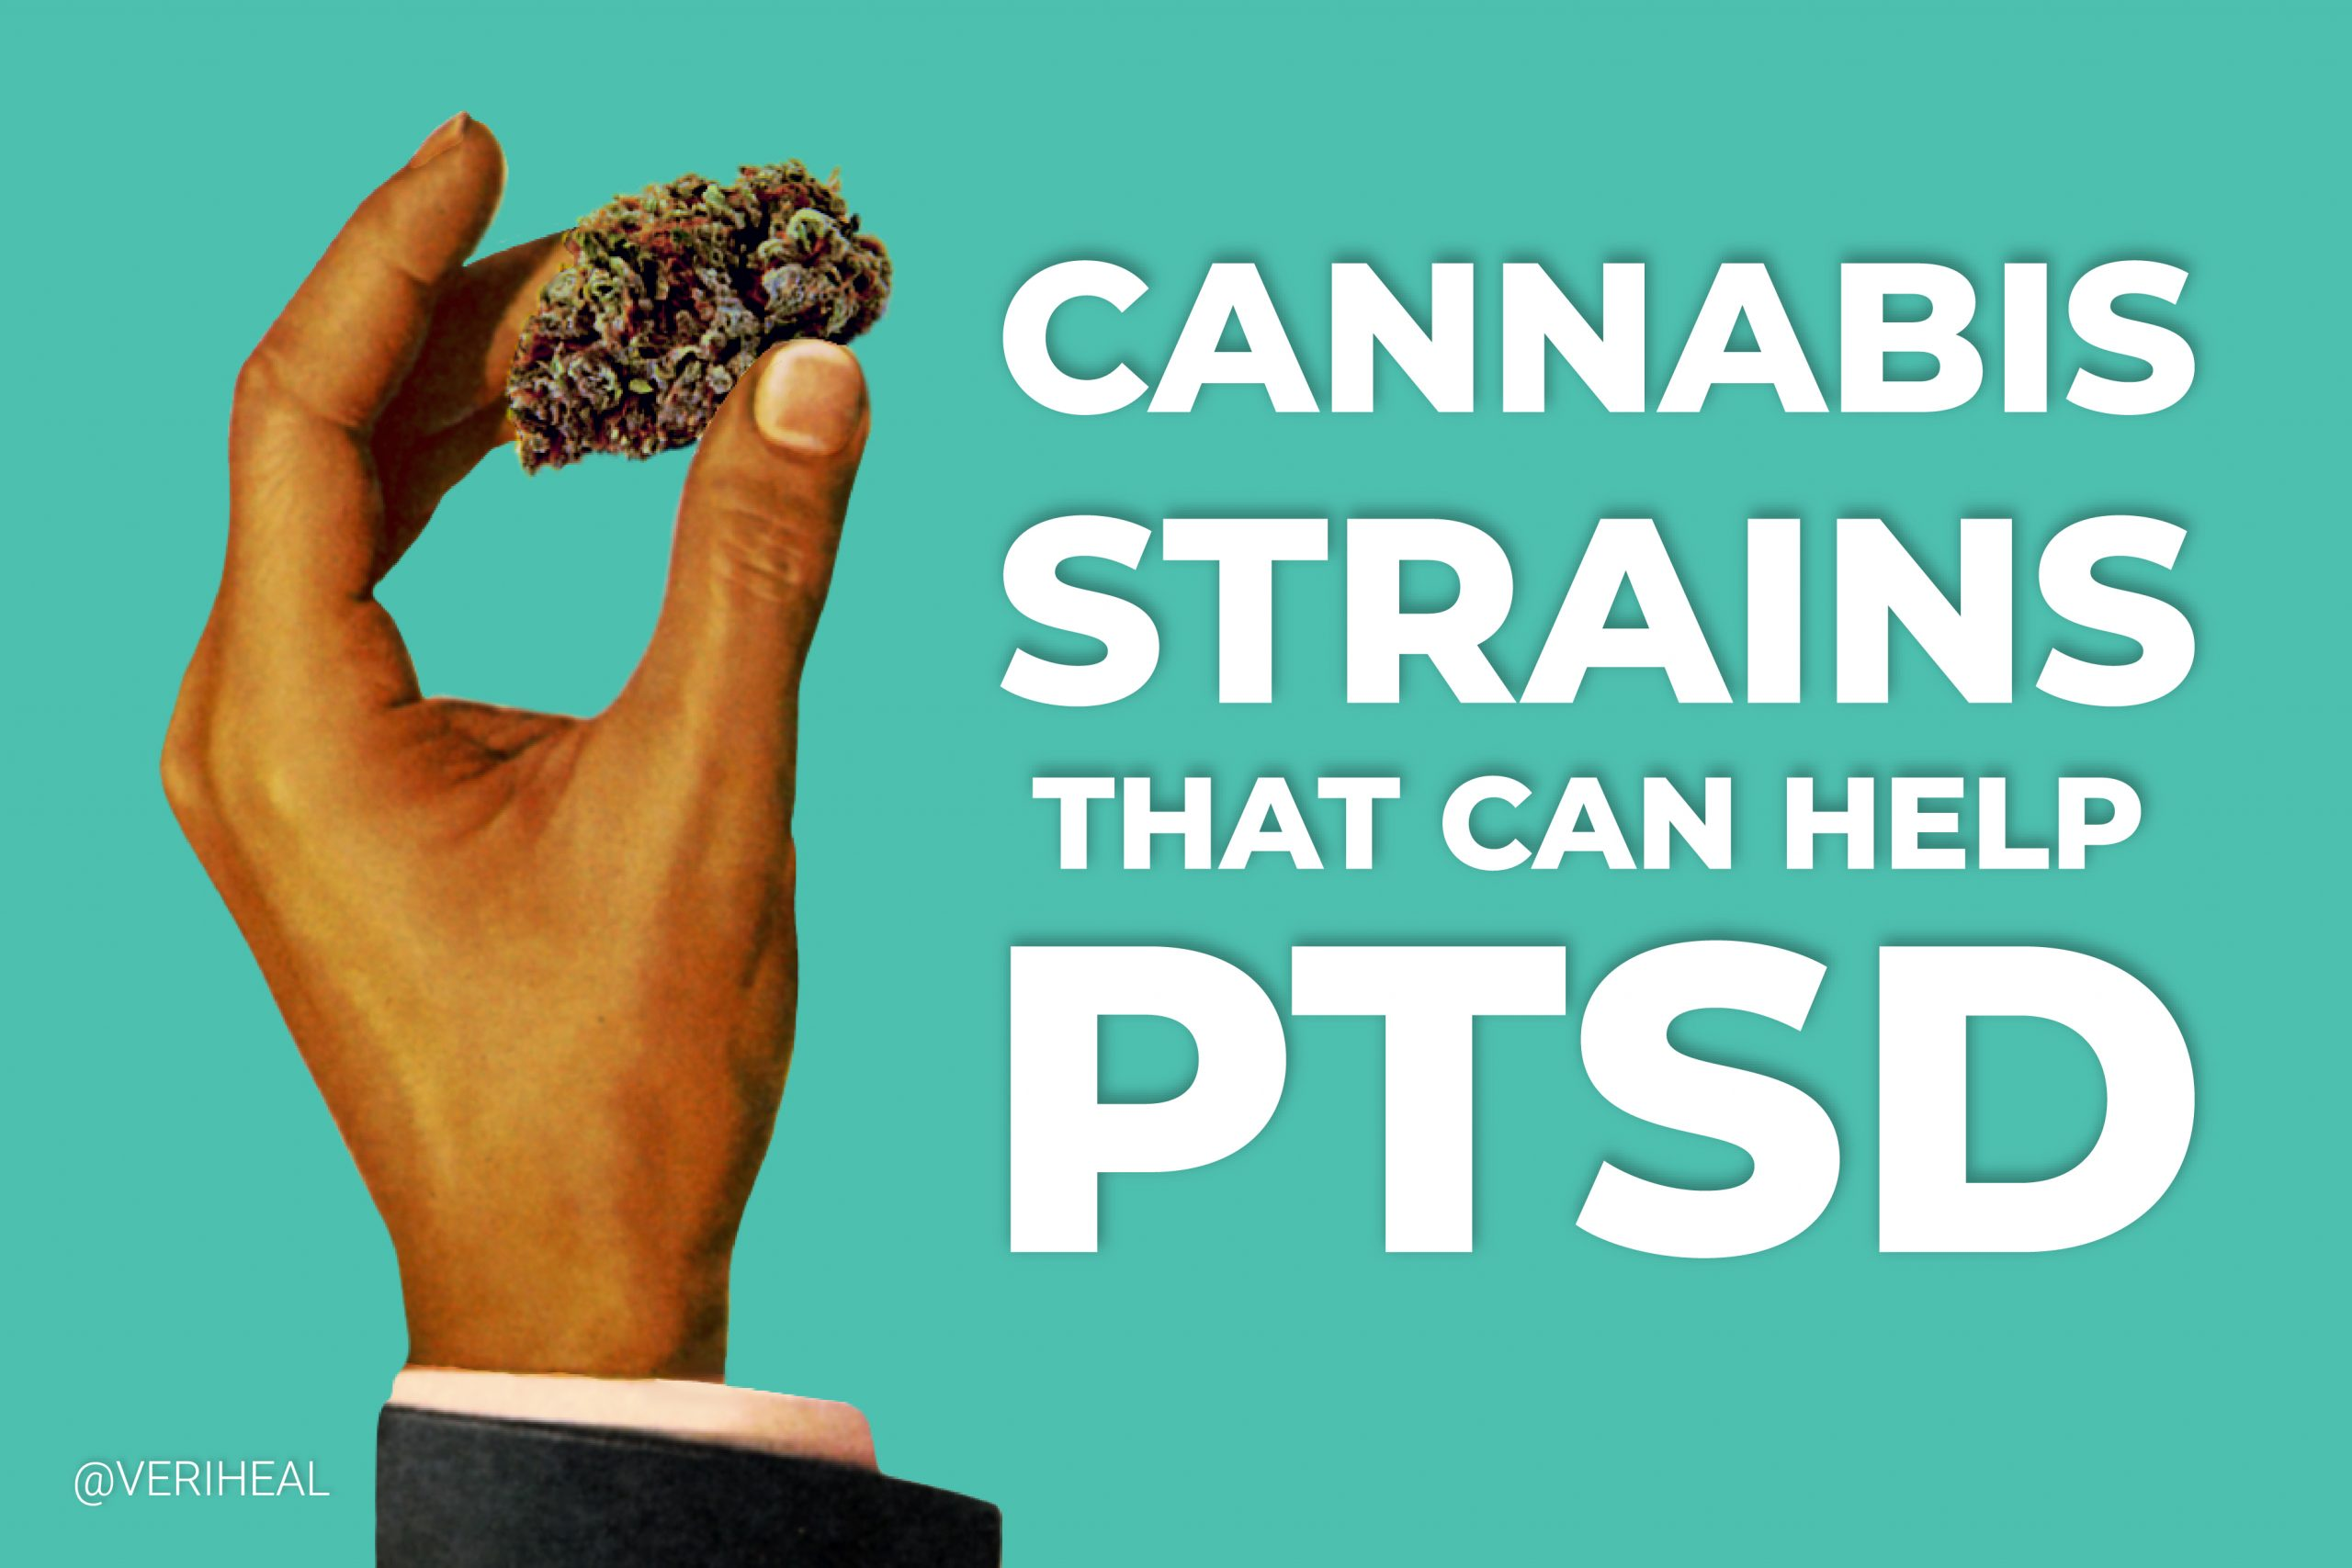 5 Preferred Cannabis Strains That Can Help With PTSD